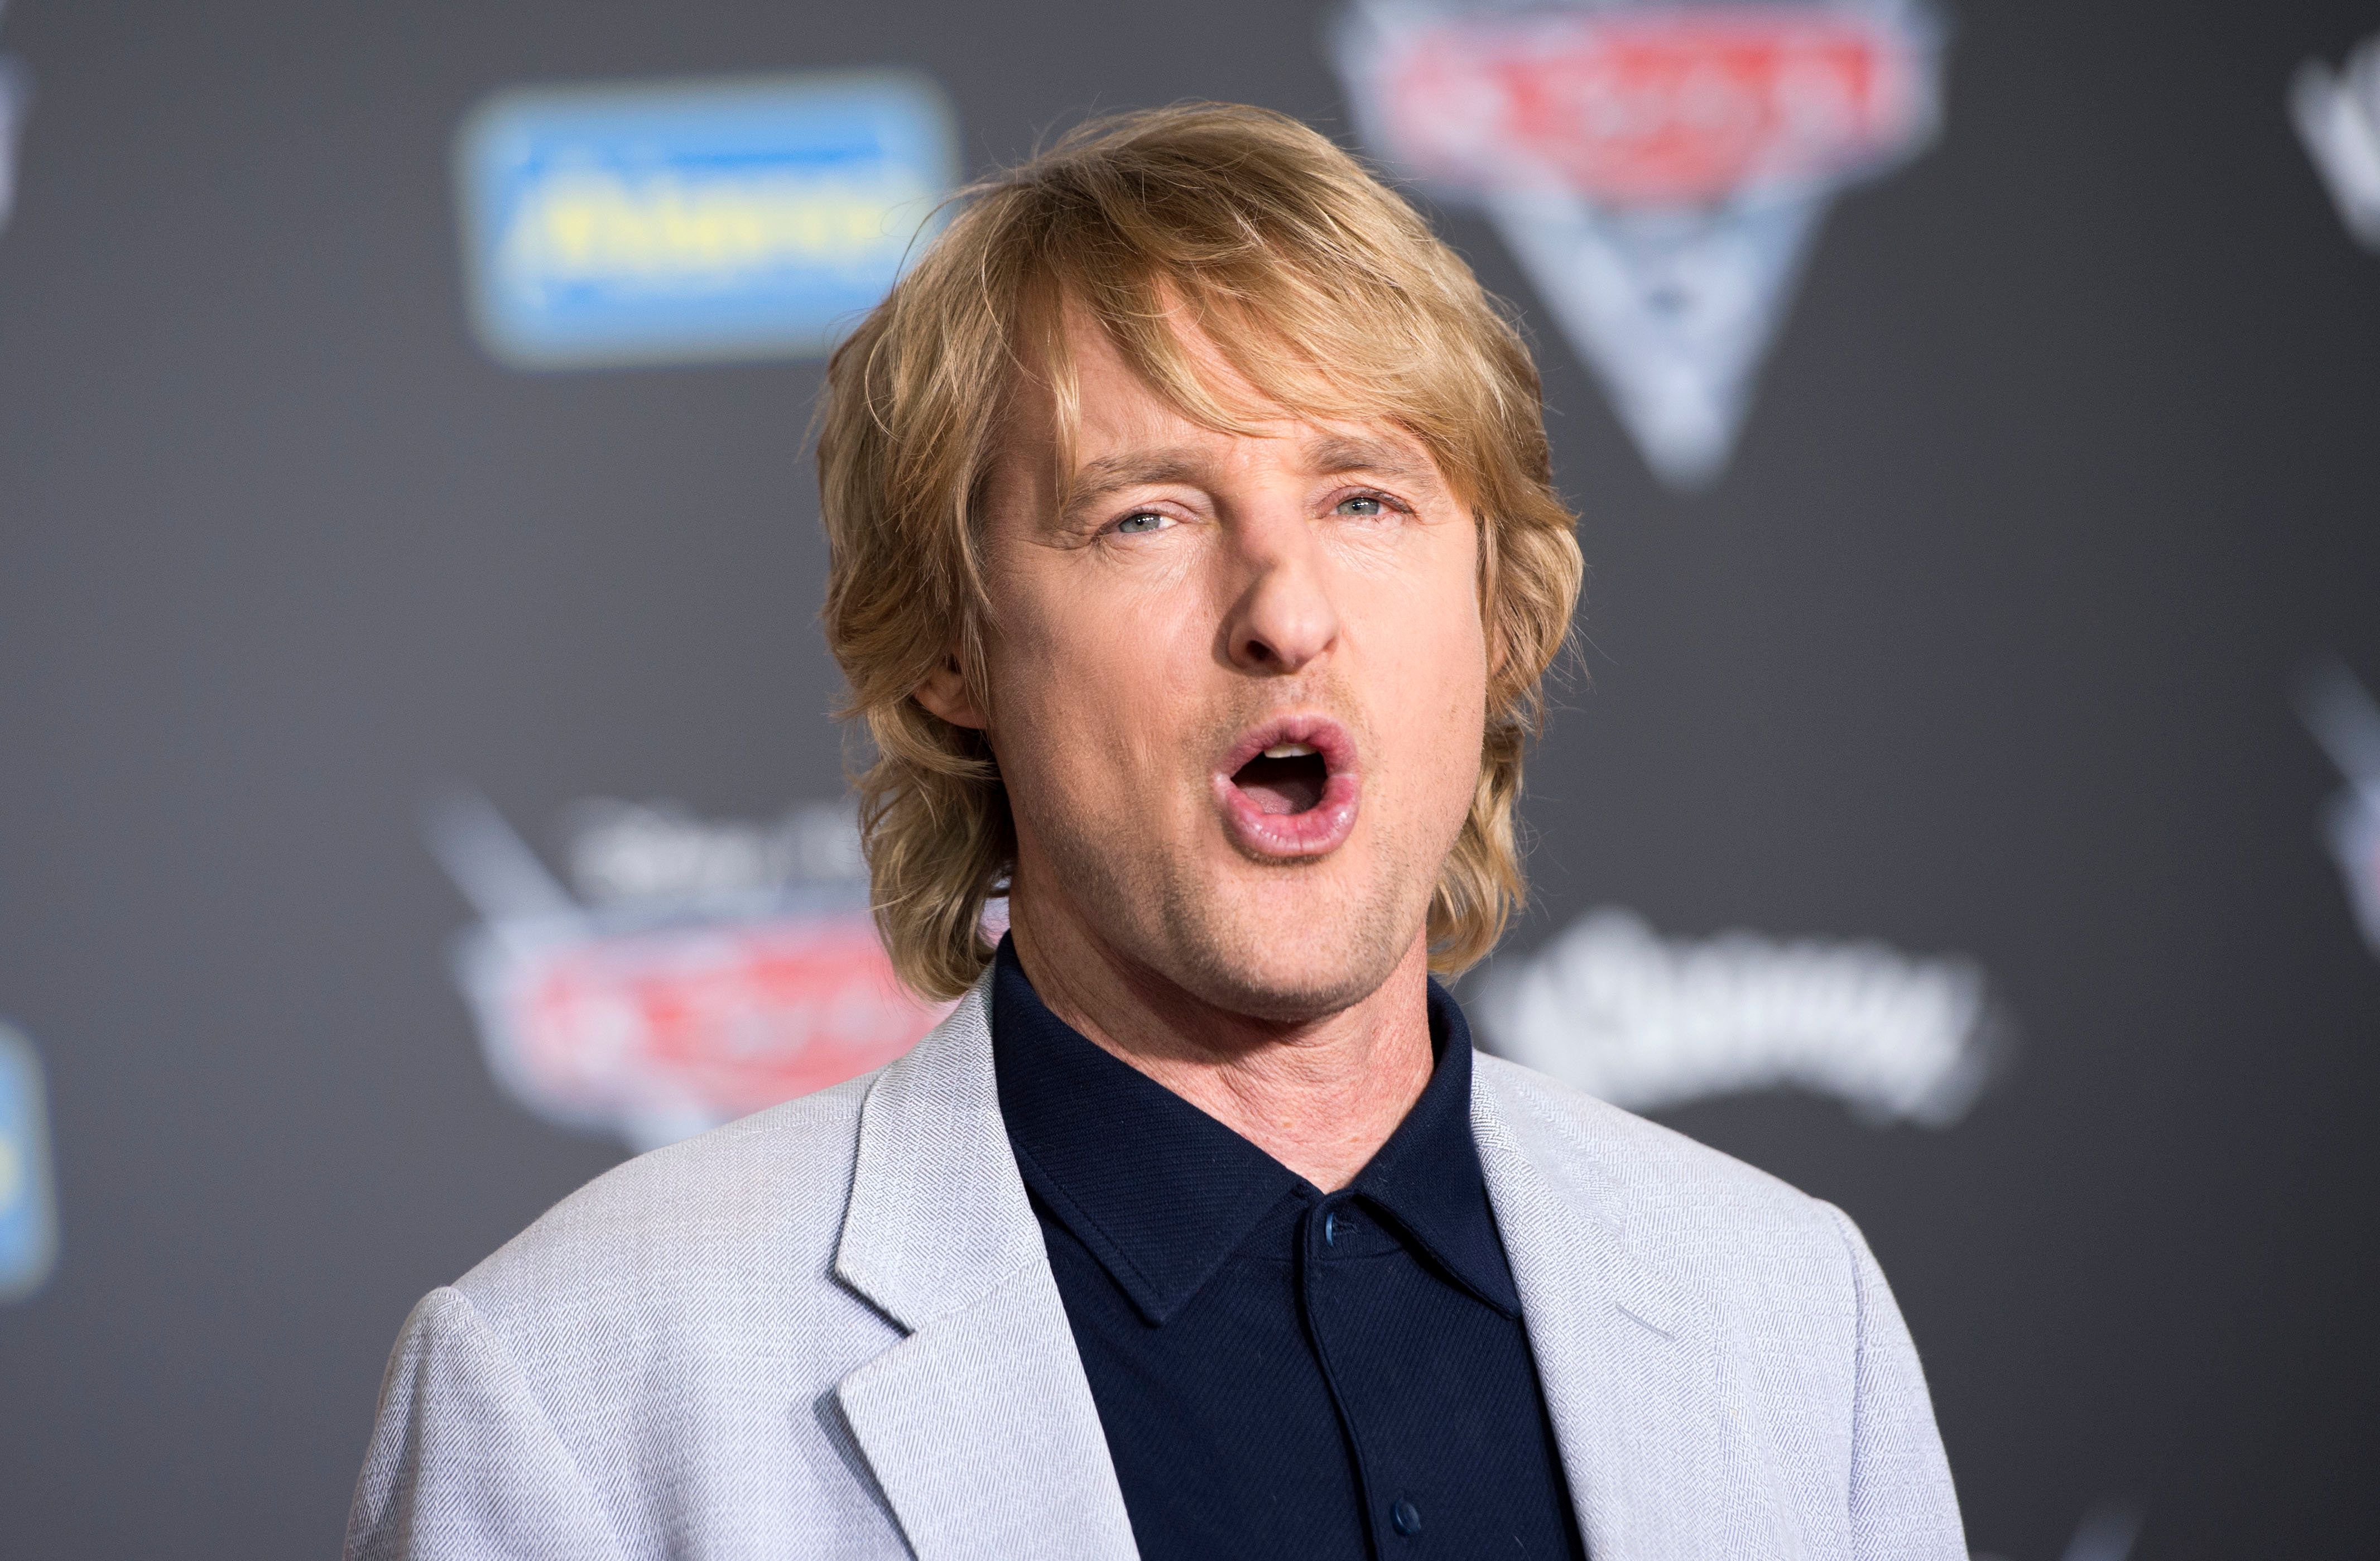 Actor Owen Wilson attends the world Premiere of Disney-Pixar 'Cars 3' at the Anaheim Convention Center, on June 10, 2017, in Anaheim, California. / AFP PHOTO / VALERIE MACON        (Photo credit should read VALERIE MACON/AFP/Getty Images)